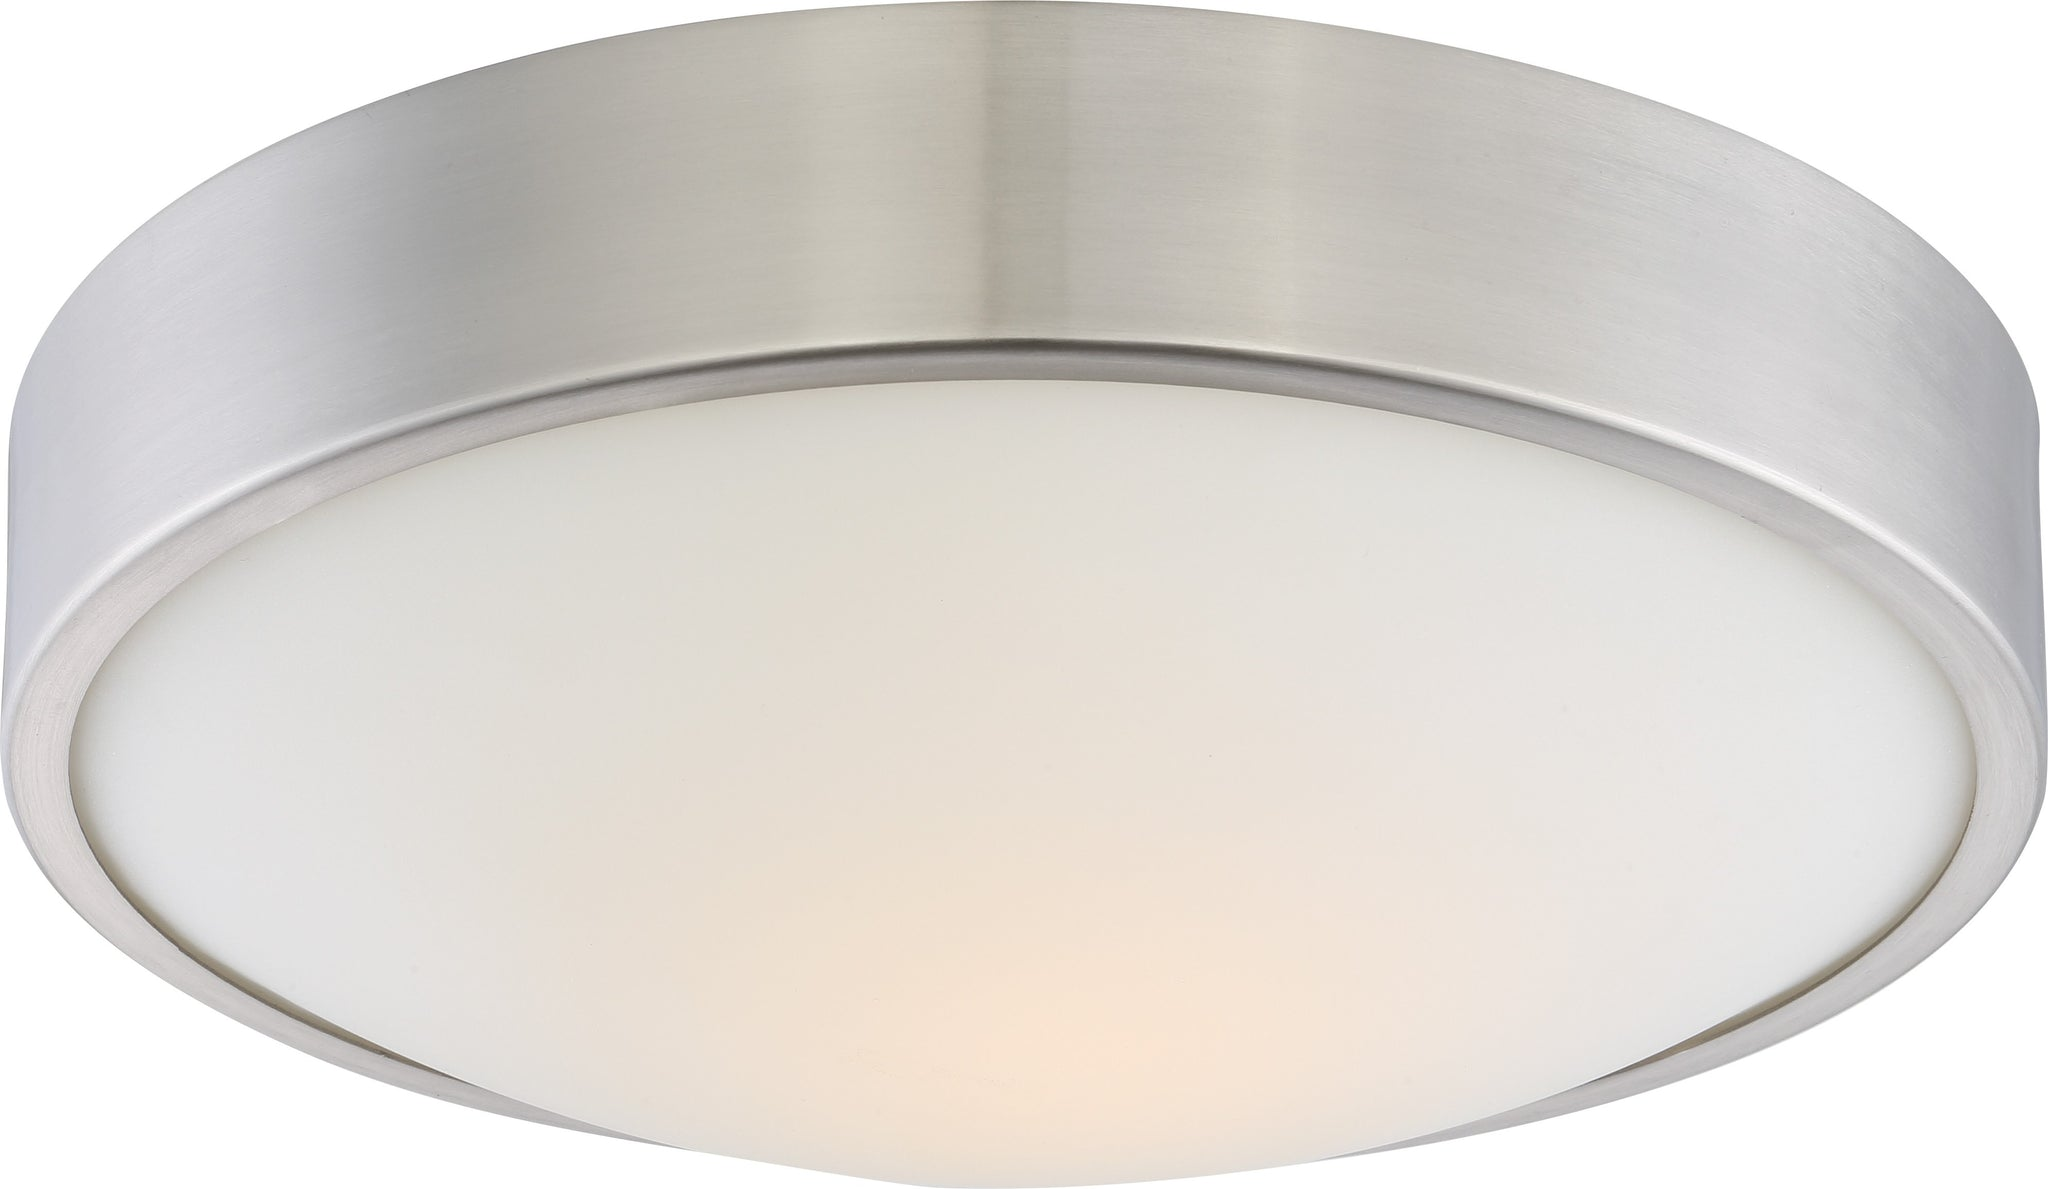 Westinghouse 6107300 11-Inch LED Indoor Flush Mount Ceiling Fixture Brushed Nickel Finish with Frosted Acrylic Shade